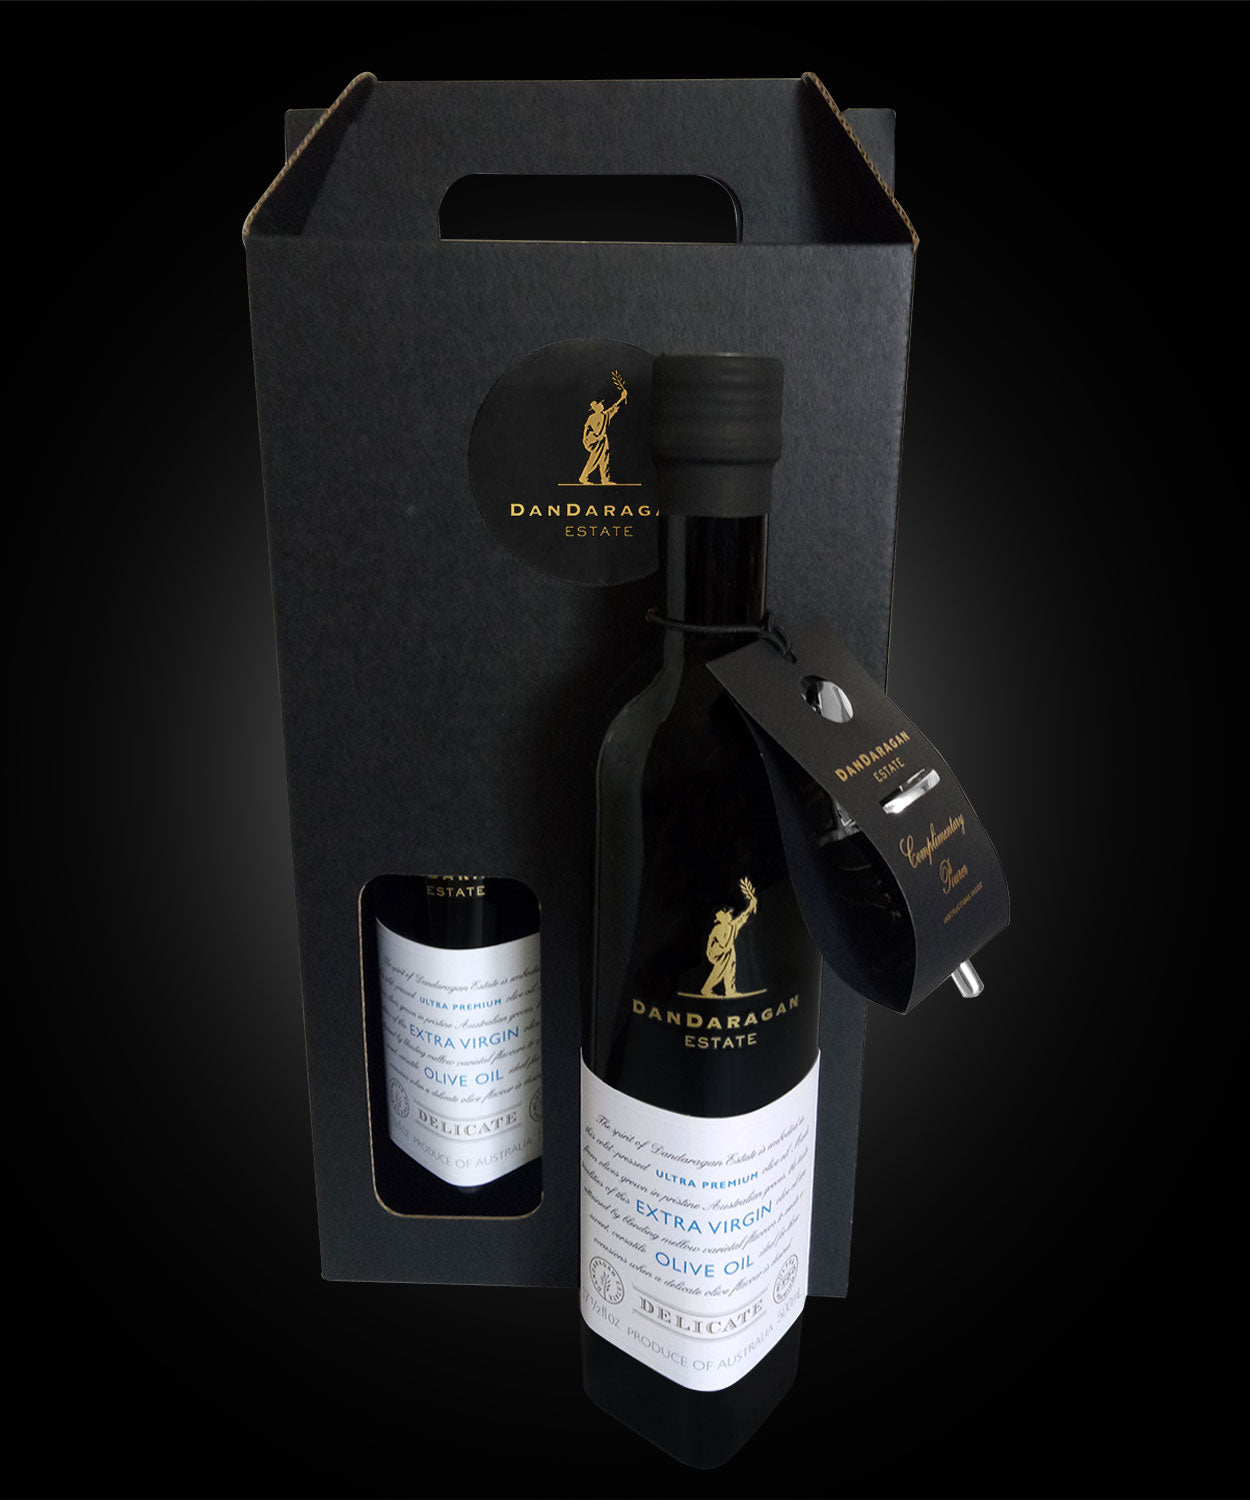 Exclusive Christmas Twin Pack - Dandaragan Estate